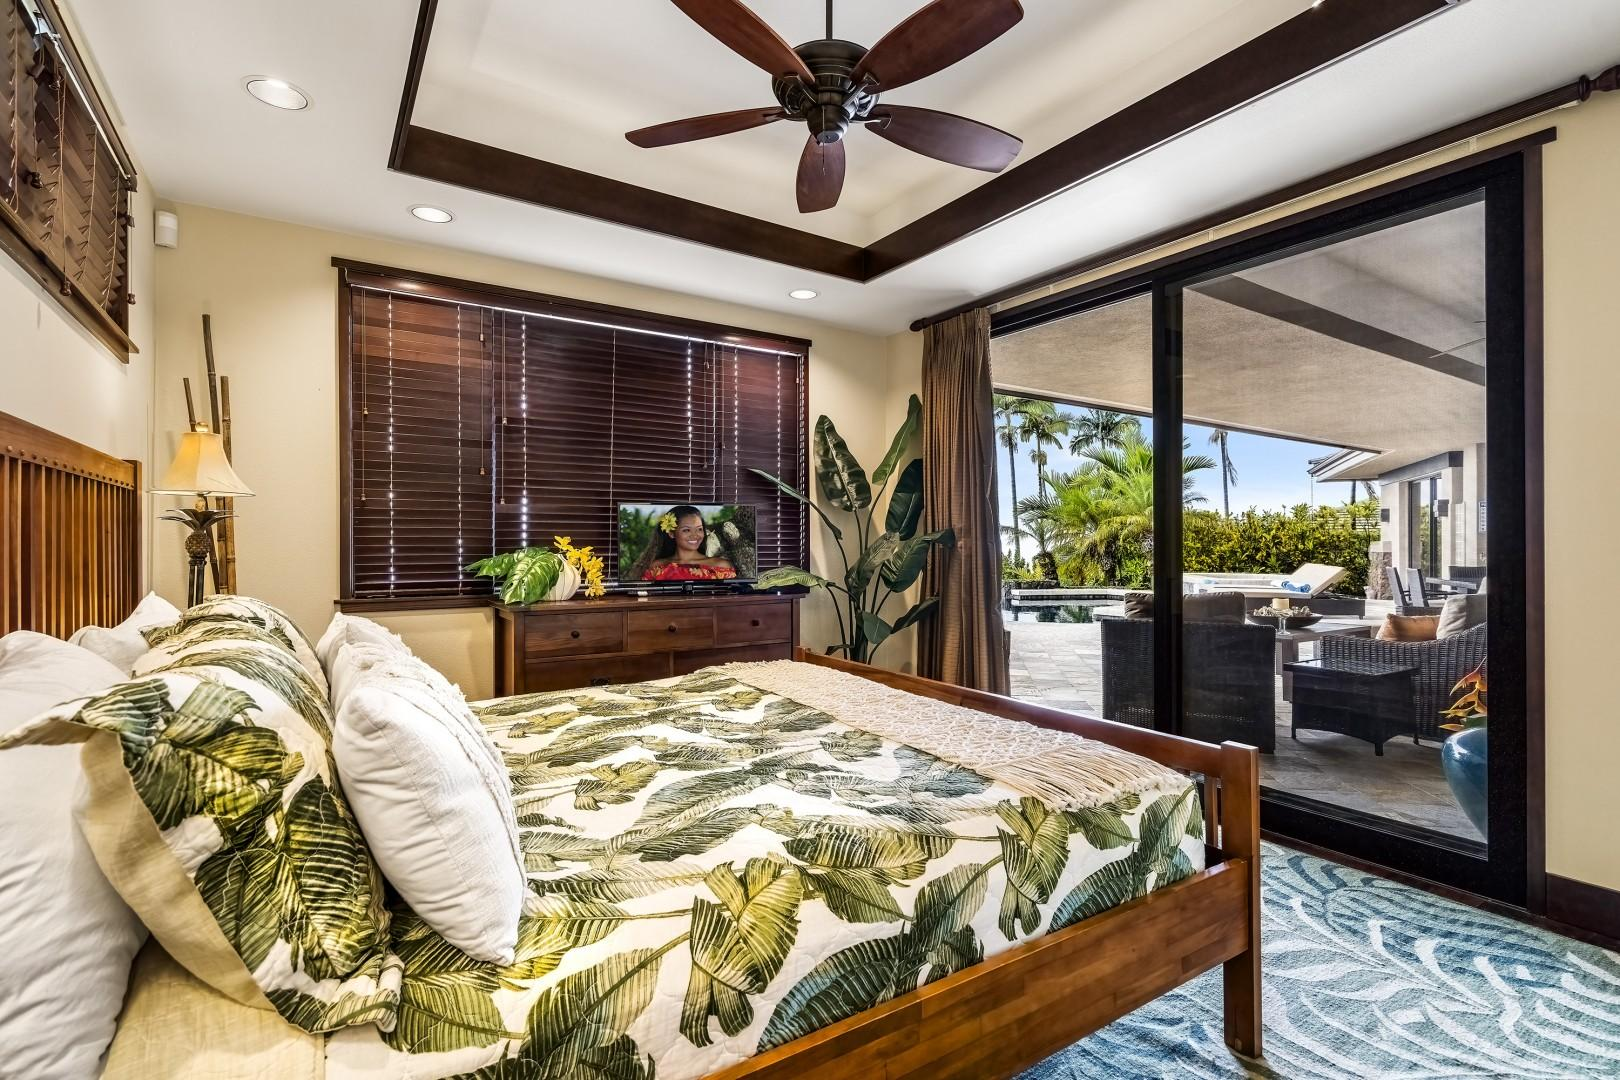 Equipped with Queen bed, TV, A/C, and Lanai access